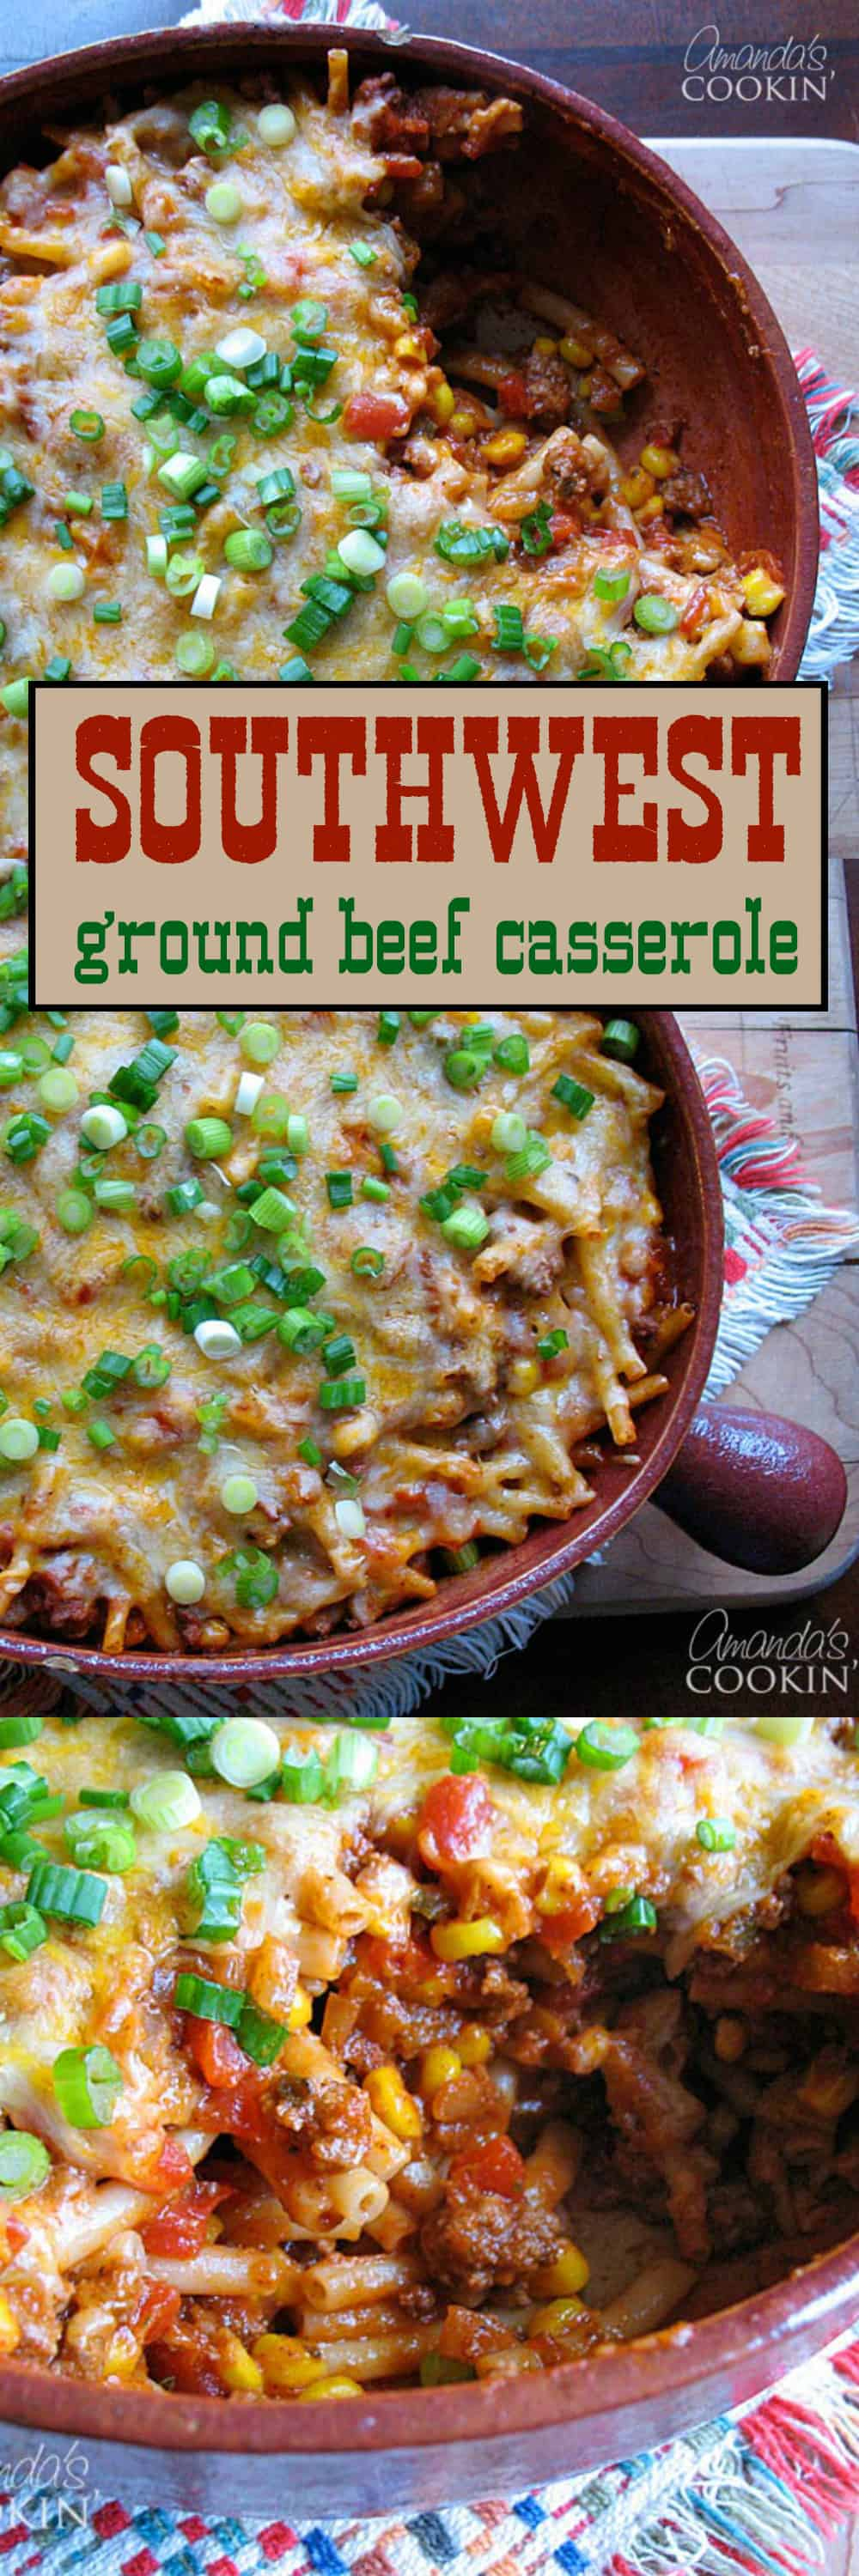 We love hamburgers, tacos, and chili, but new ground beef recipes are always welcome in my kitchen. This southwest ground beef casserole is a favorite!